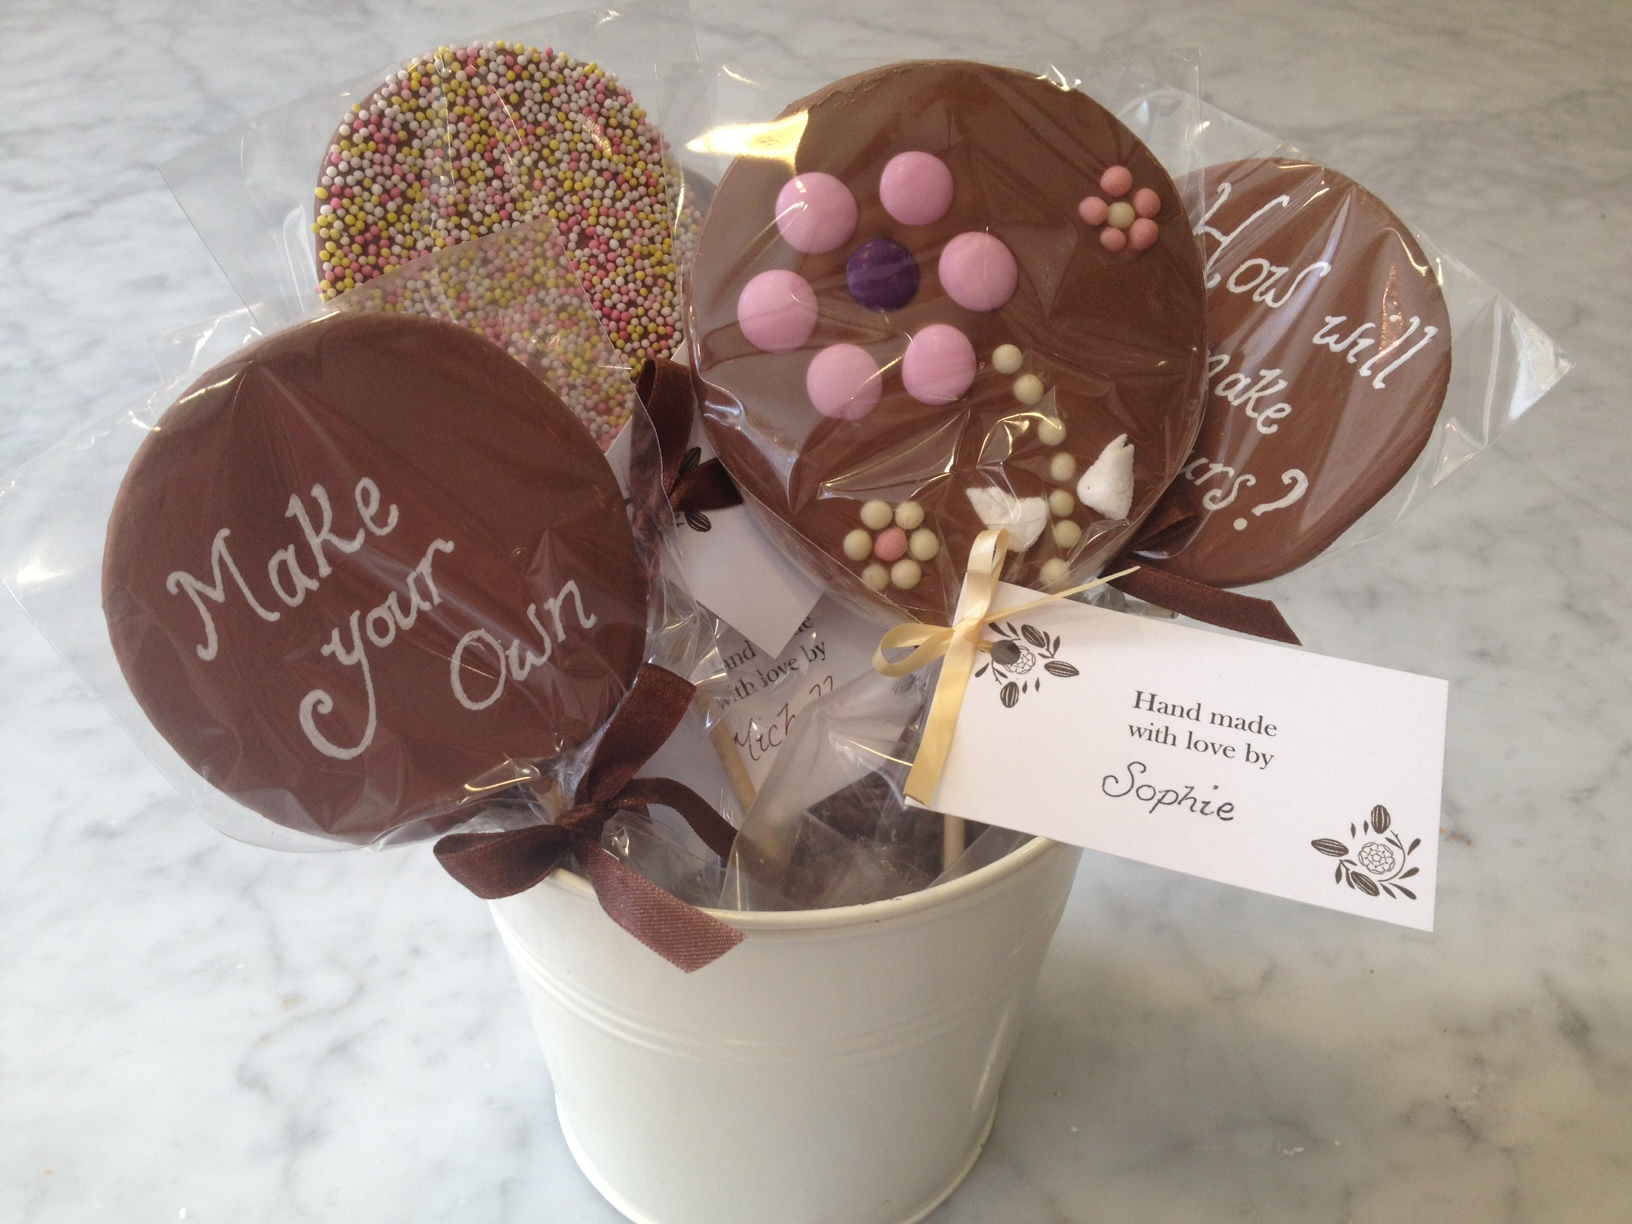 Chocolate Lollipops Hand Made with Love